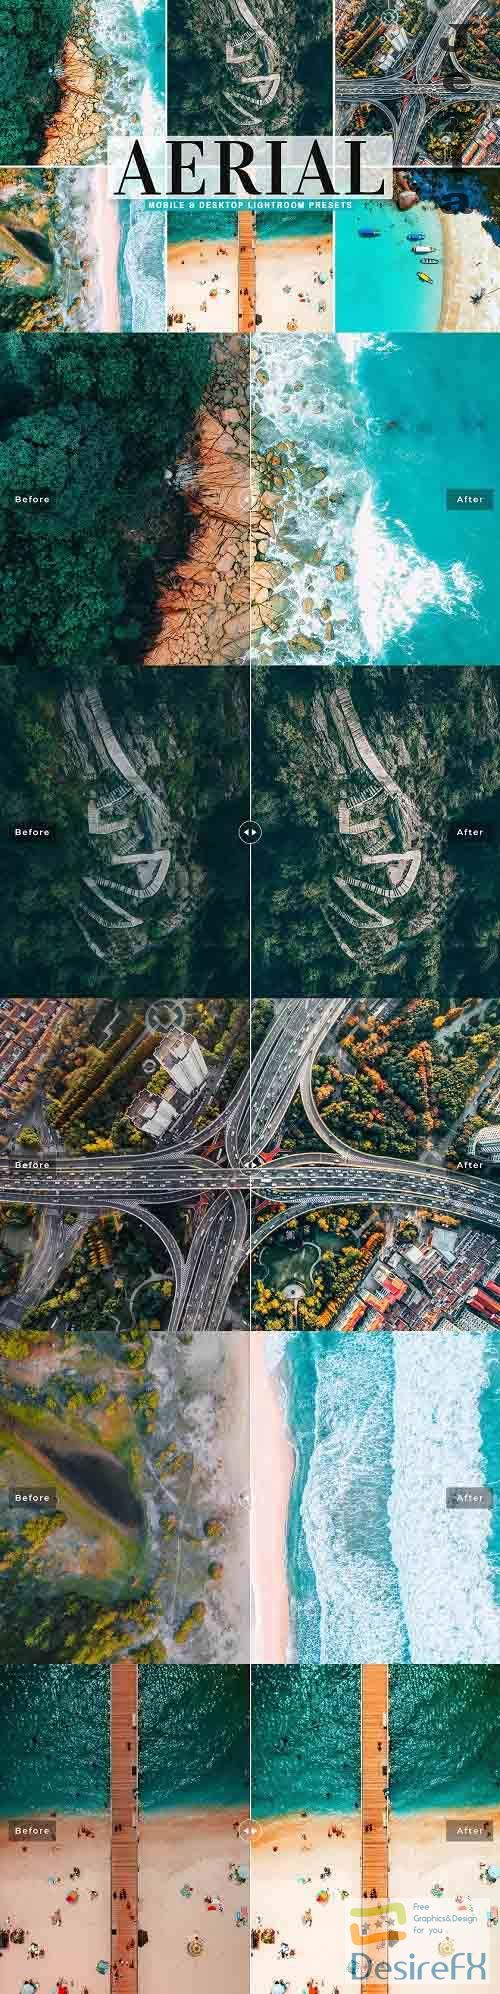 Aerial Pro Lightroom Presets - 5610254 - Mobile & Desktop